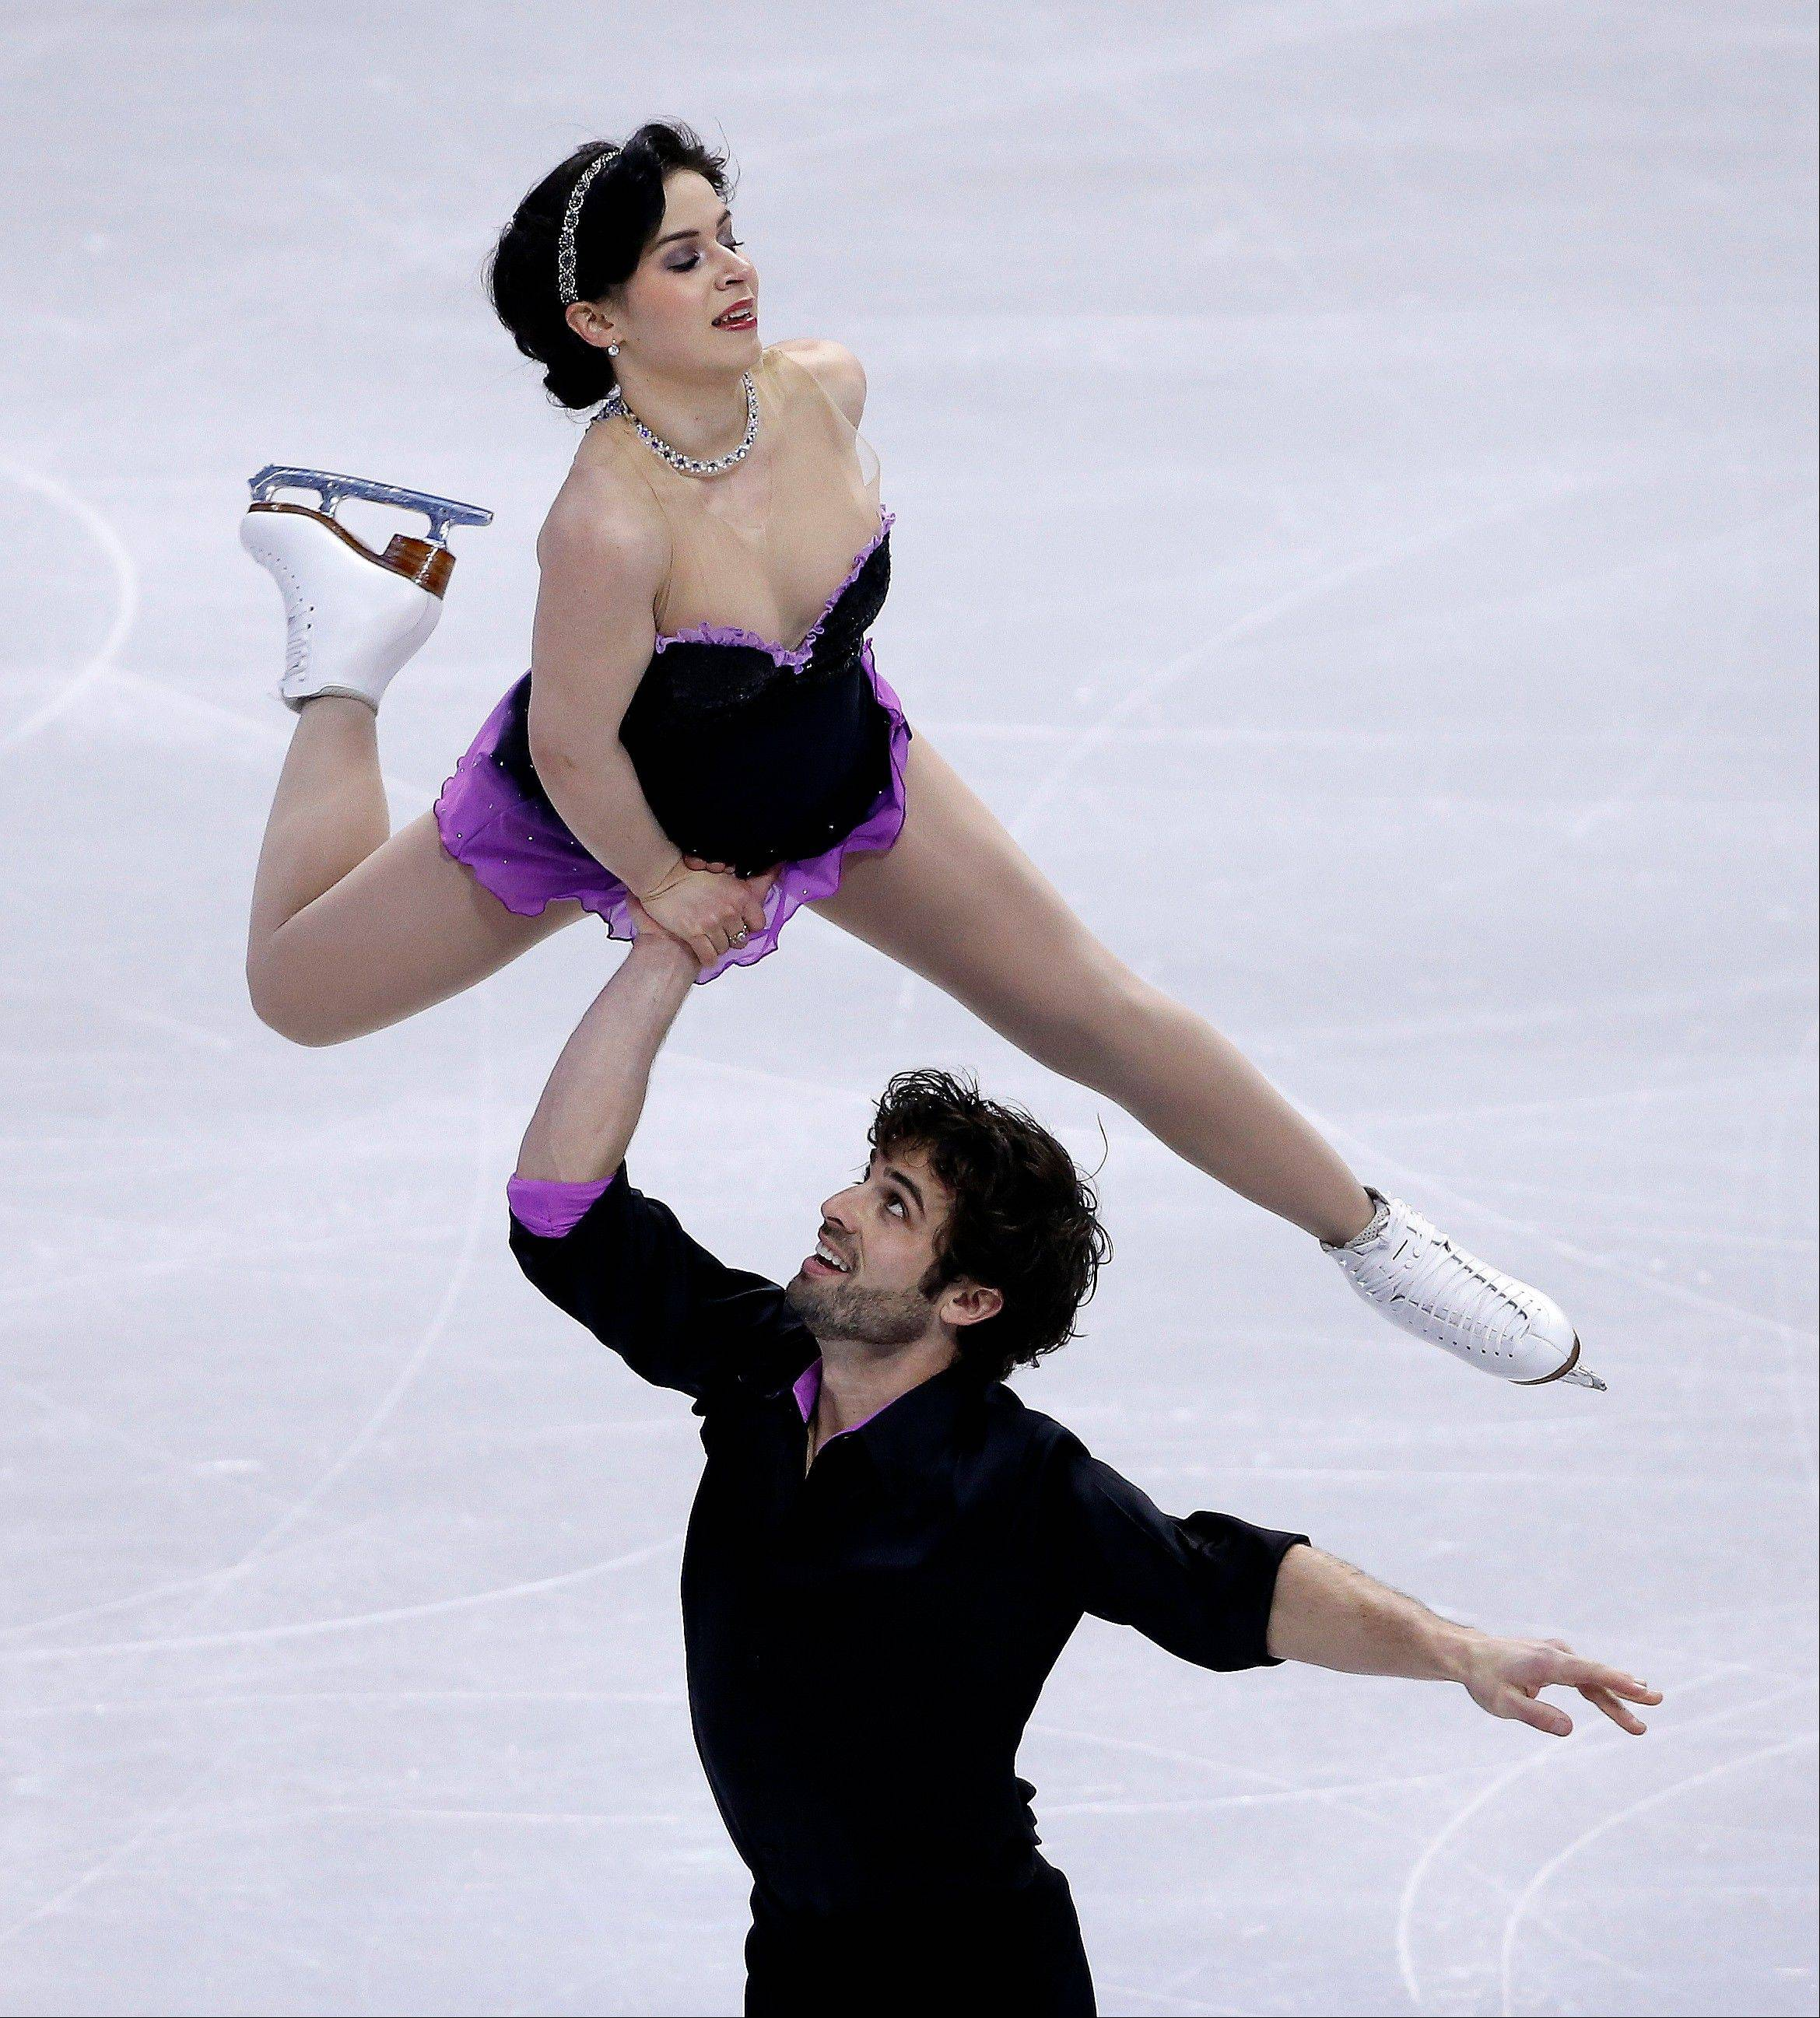 Rockne Brubaker, 27, of Algonquin, skates with Lindsay Davis during the pairs short program at the U.S. Figure Skating Championships last month. Brubaker and his younger brother Collin train with other elite skaters who are now at the Sochi Olympics.